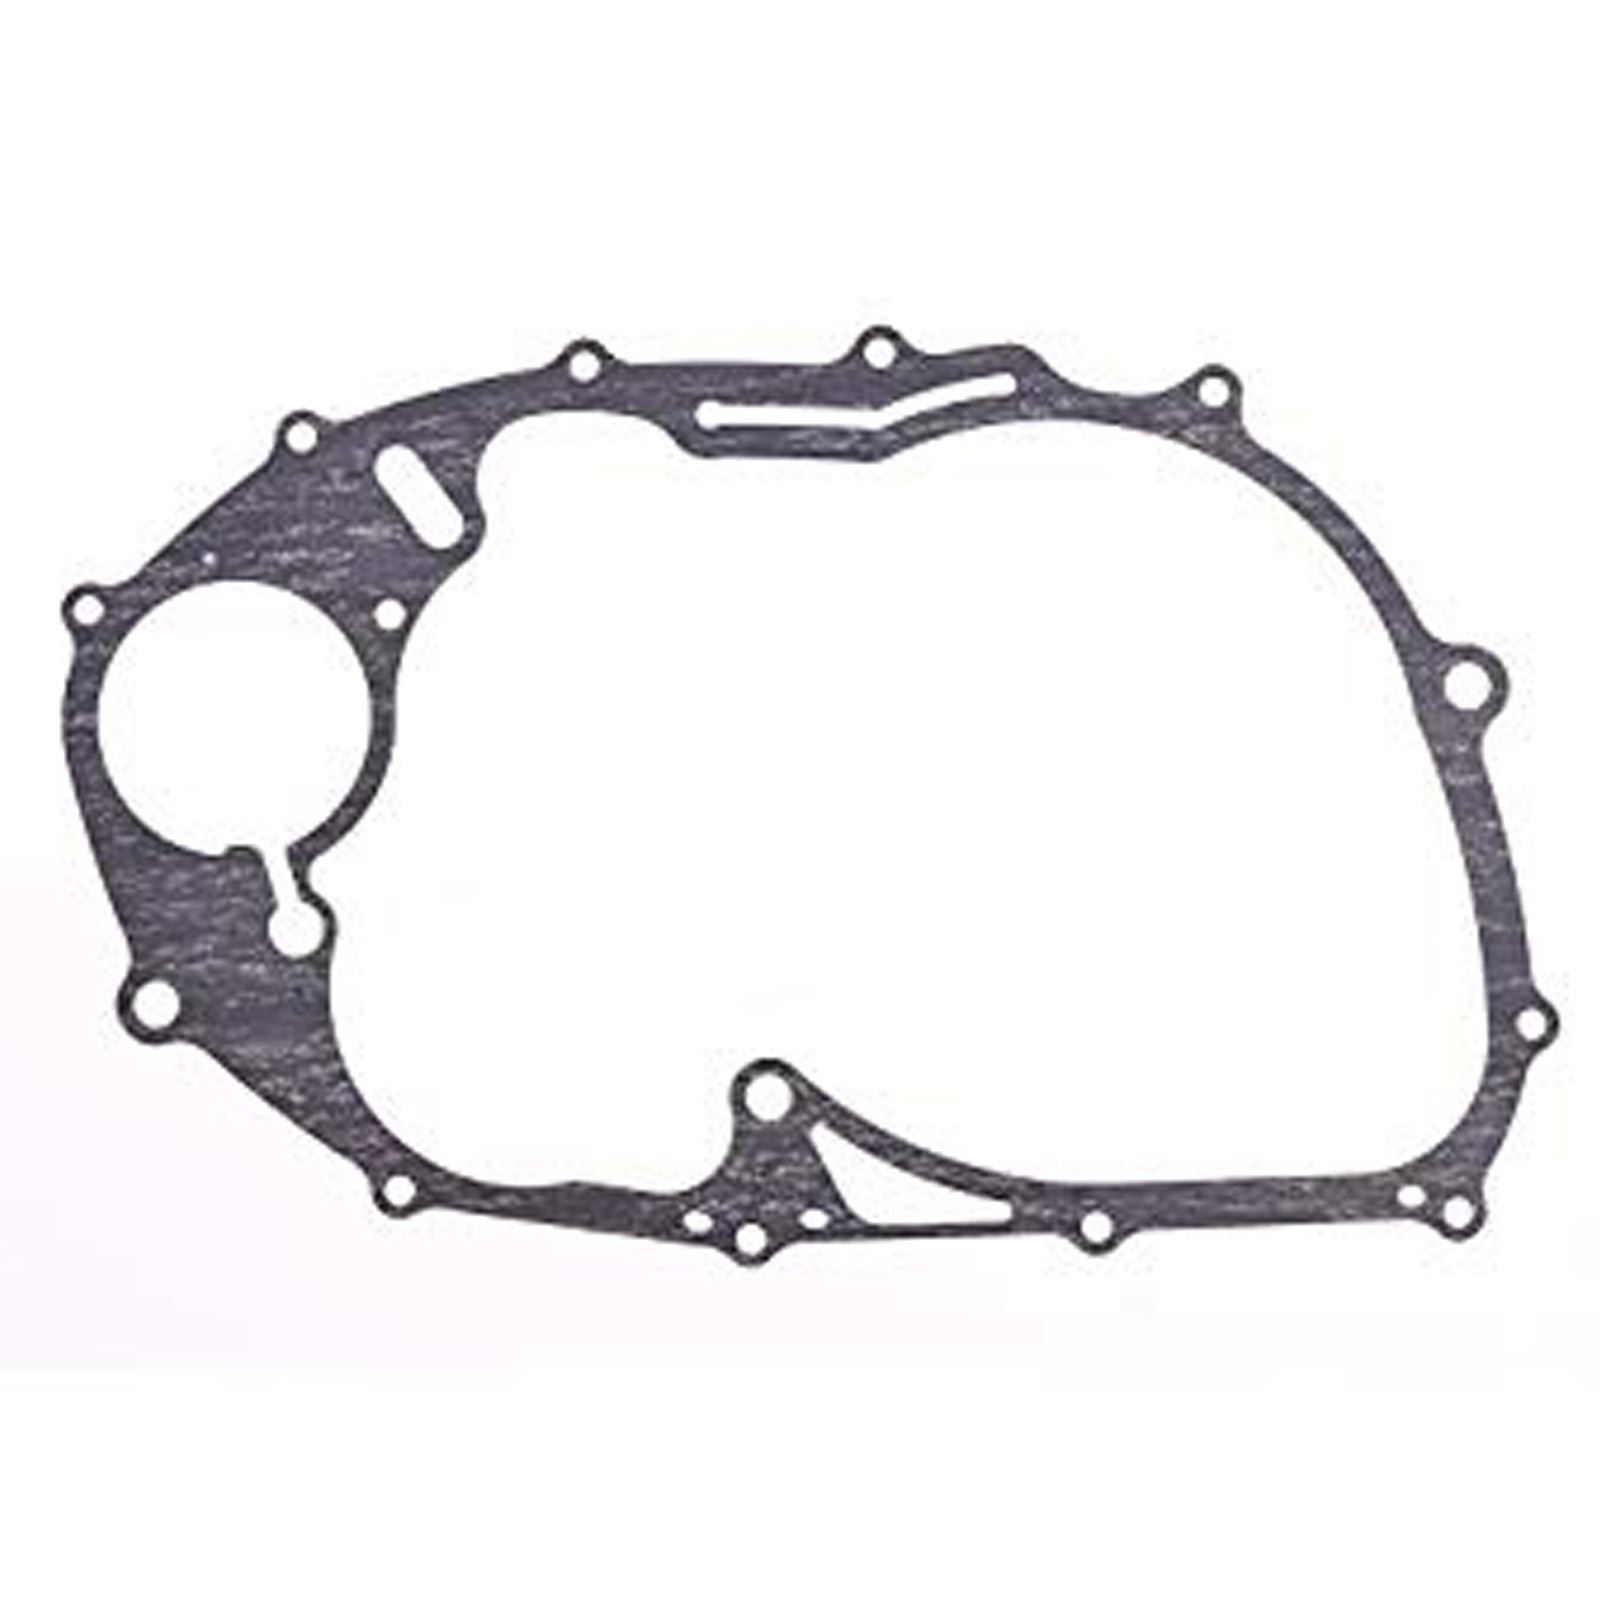 Athena Clutch Cover Gasket For Yamaha XVS 650 A Drag Star